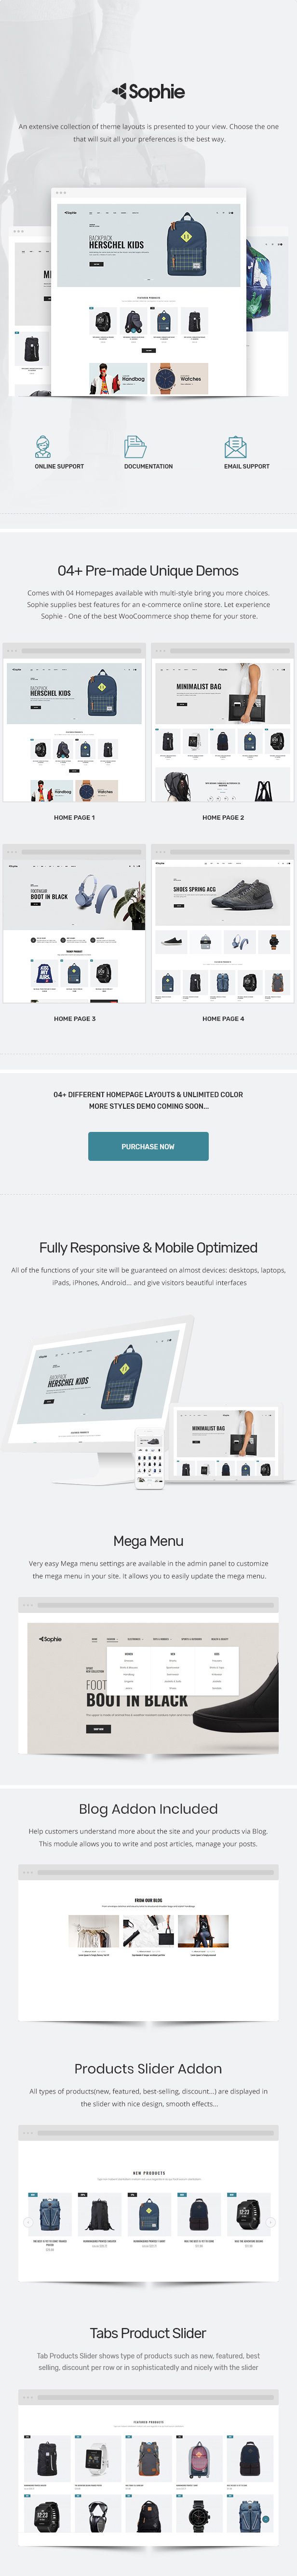 Sophie - Responsives WooCommerce Layout